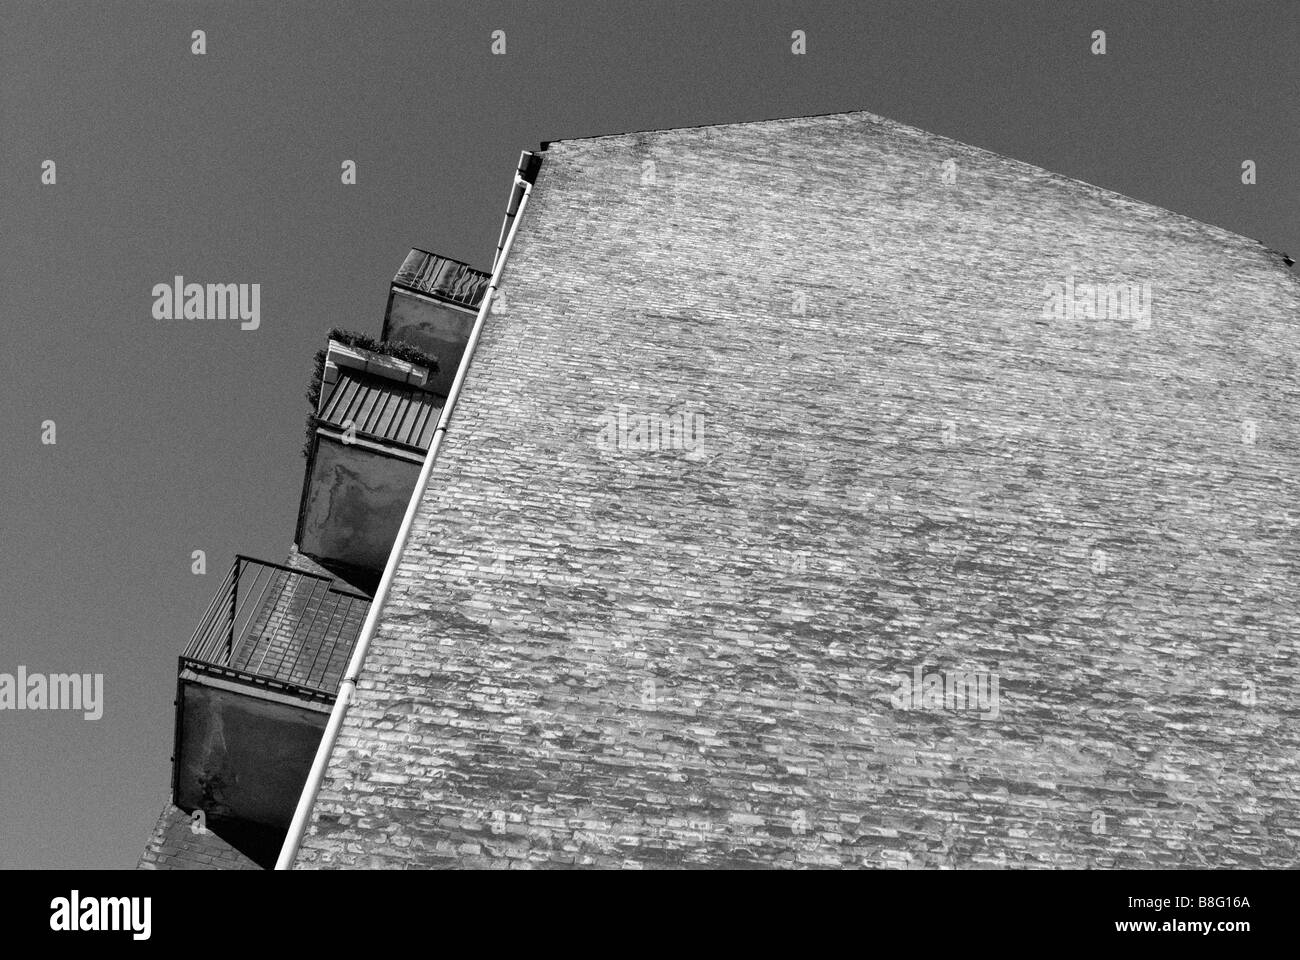 WEATHERED GABLE - Stock Image